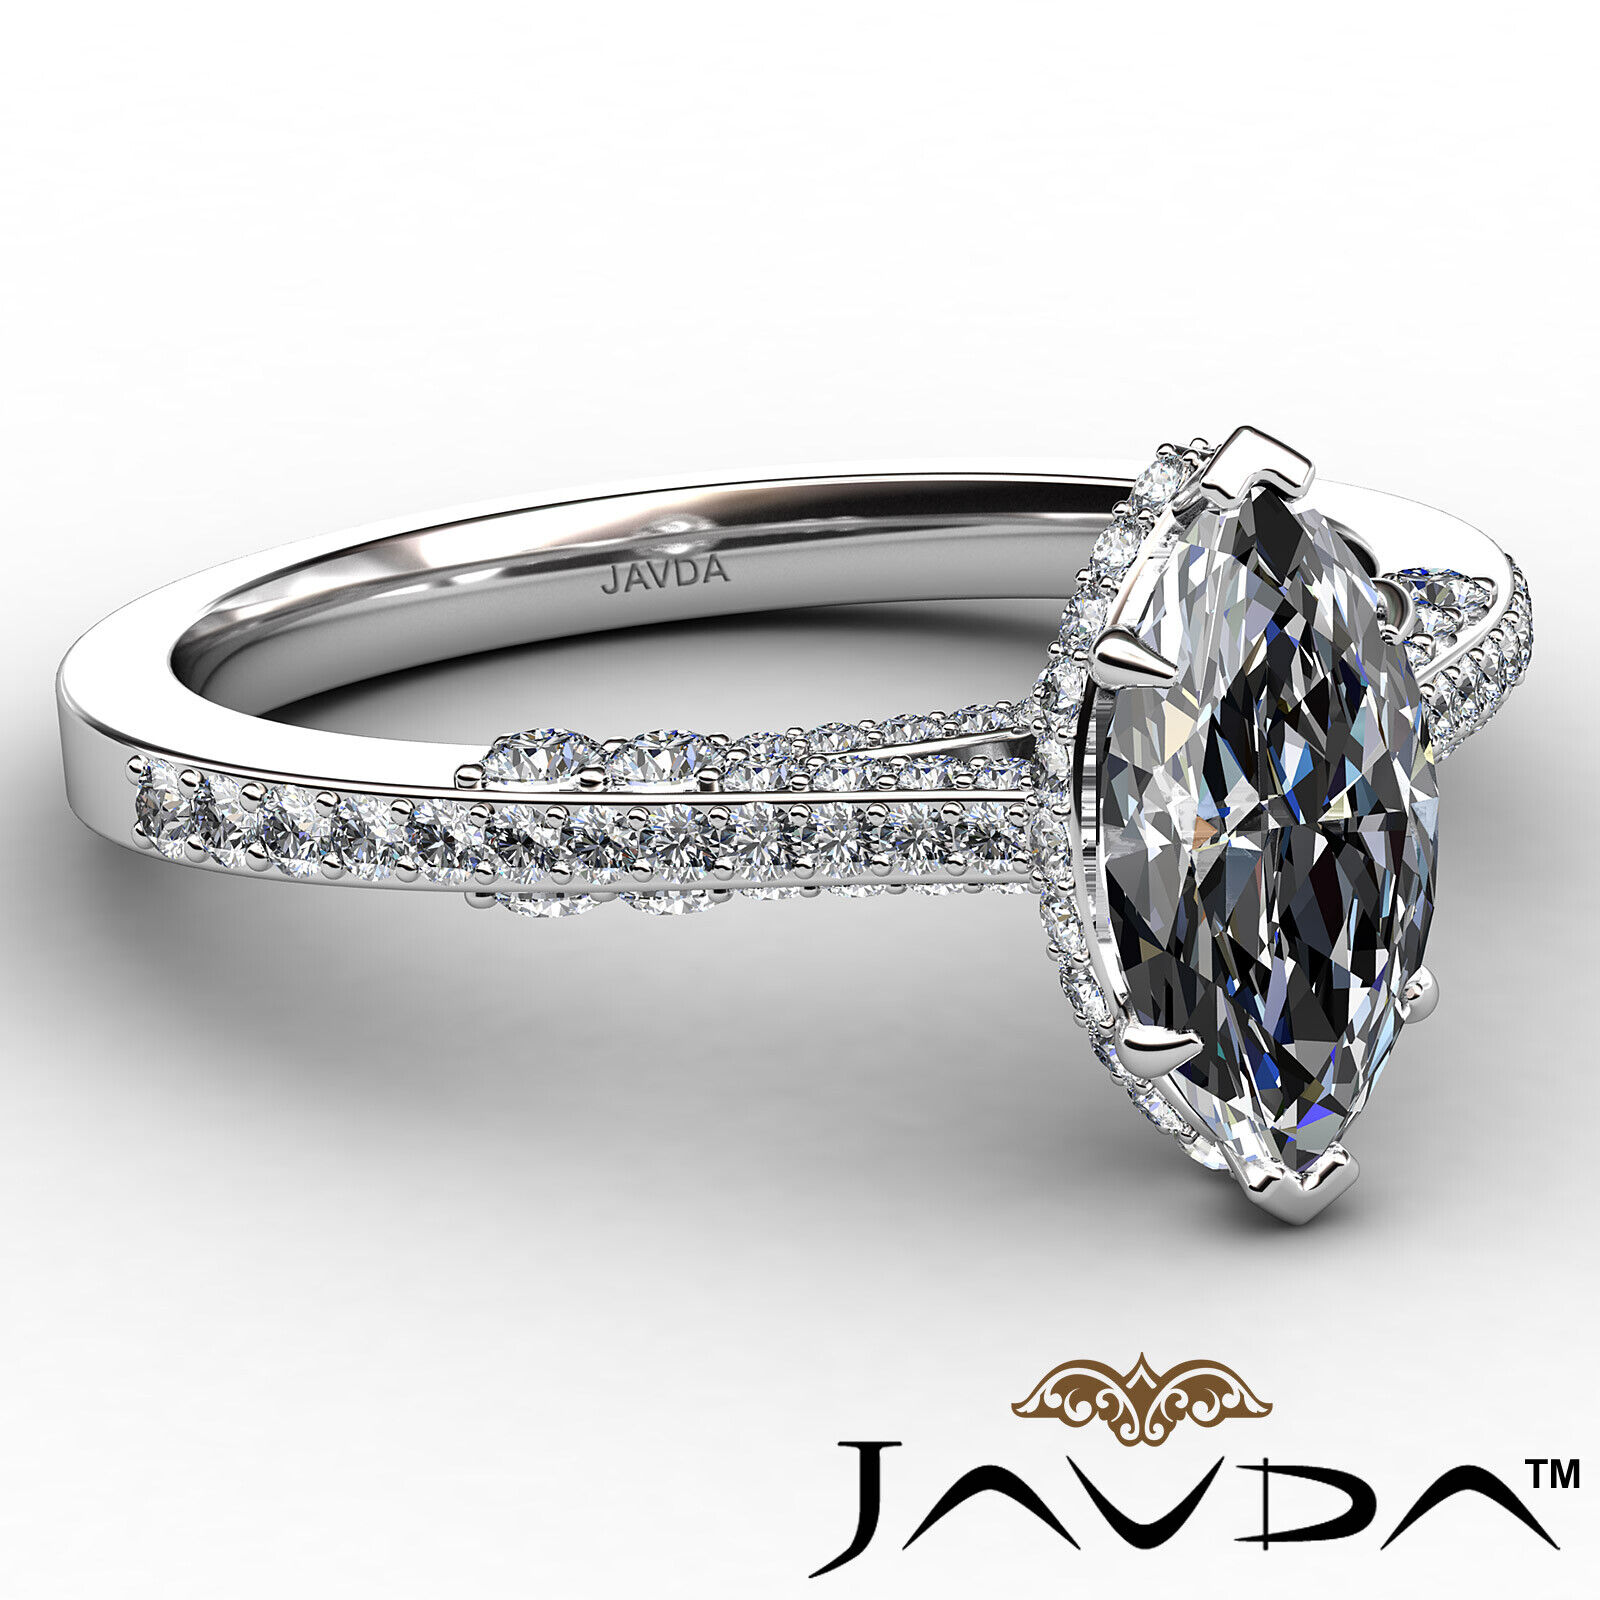 Circa Halo Marquise Diamond Engagement Ring GIA G Color & VVS2 clarity 1.1 ctw 6